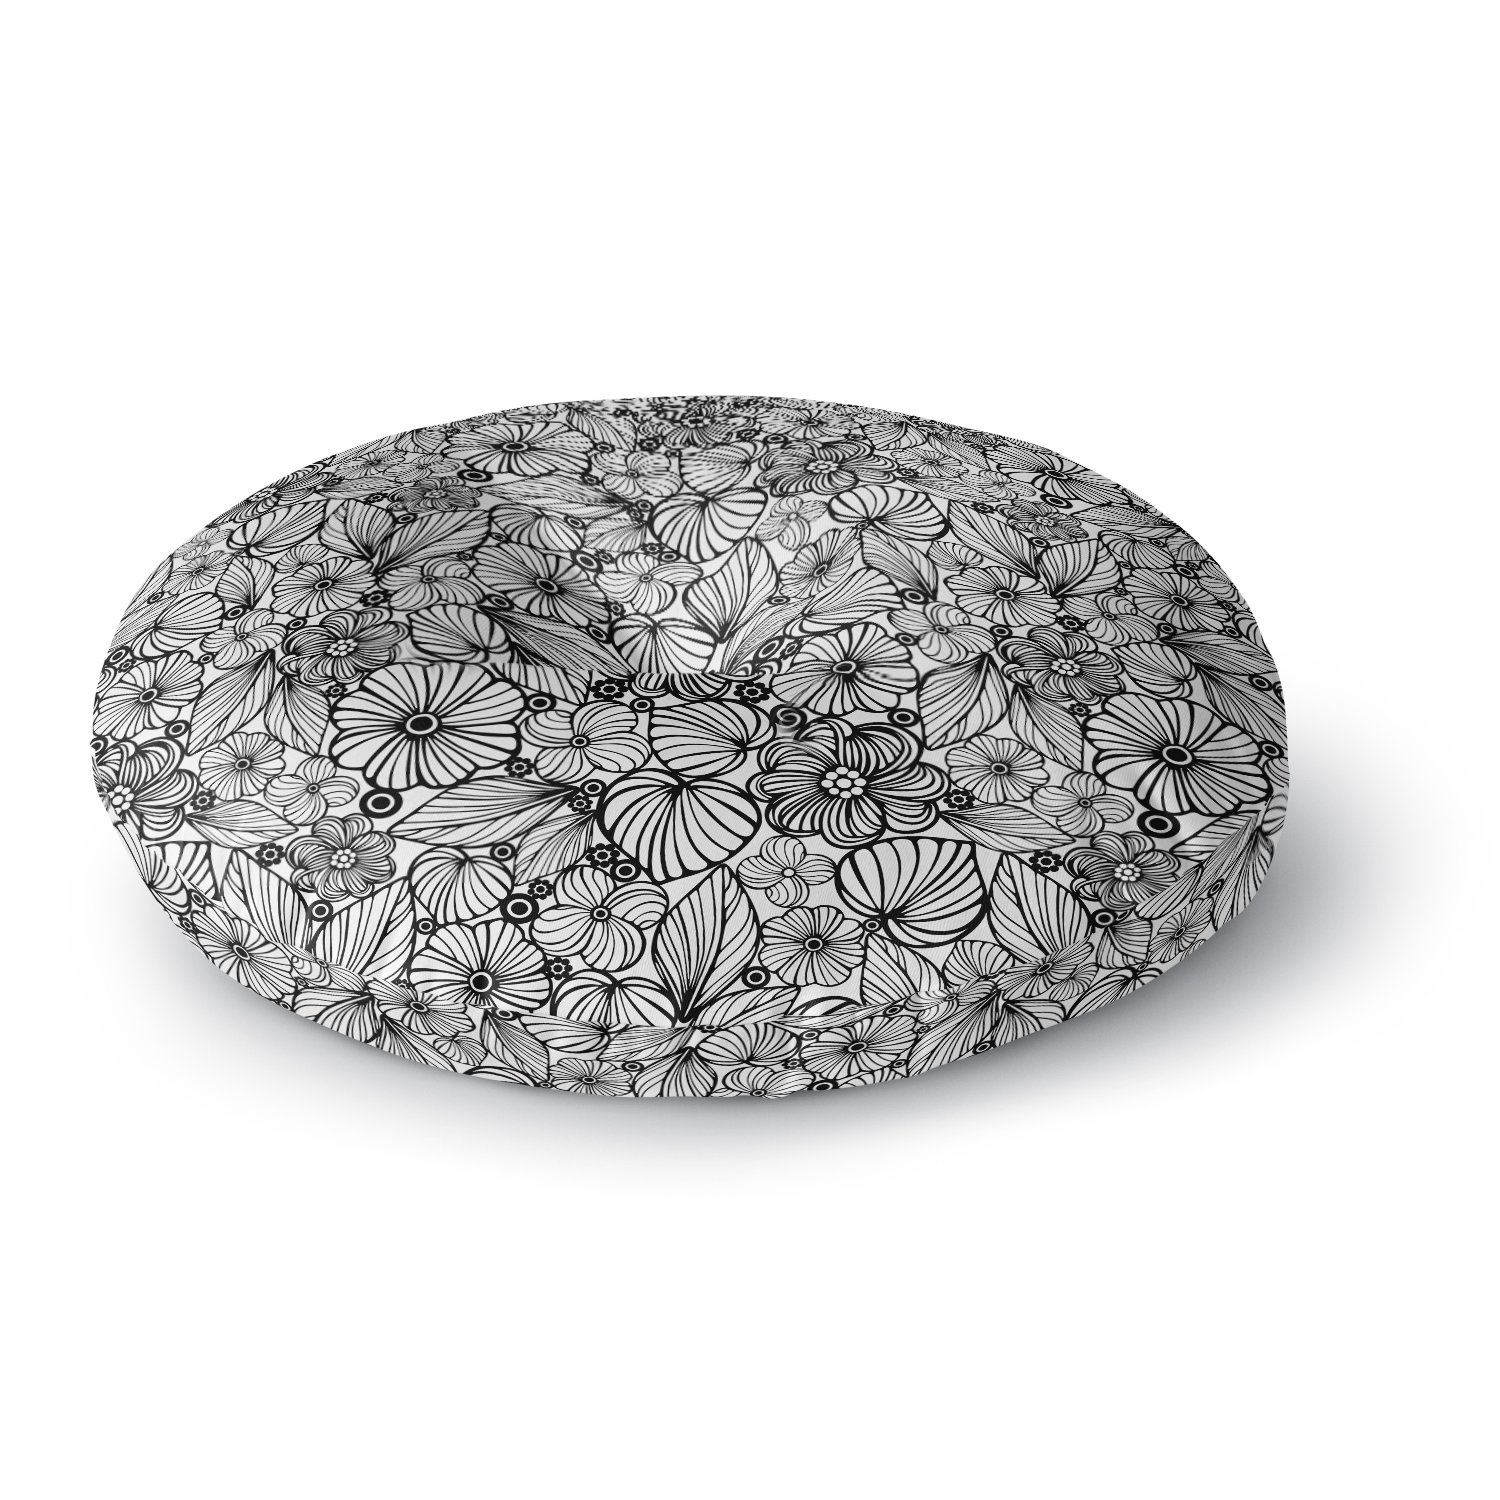 Kess InHouse Julia Grifol Candy Flowers in Black Gray White Round Floor Pillow 26